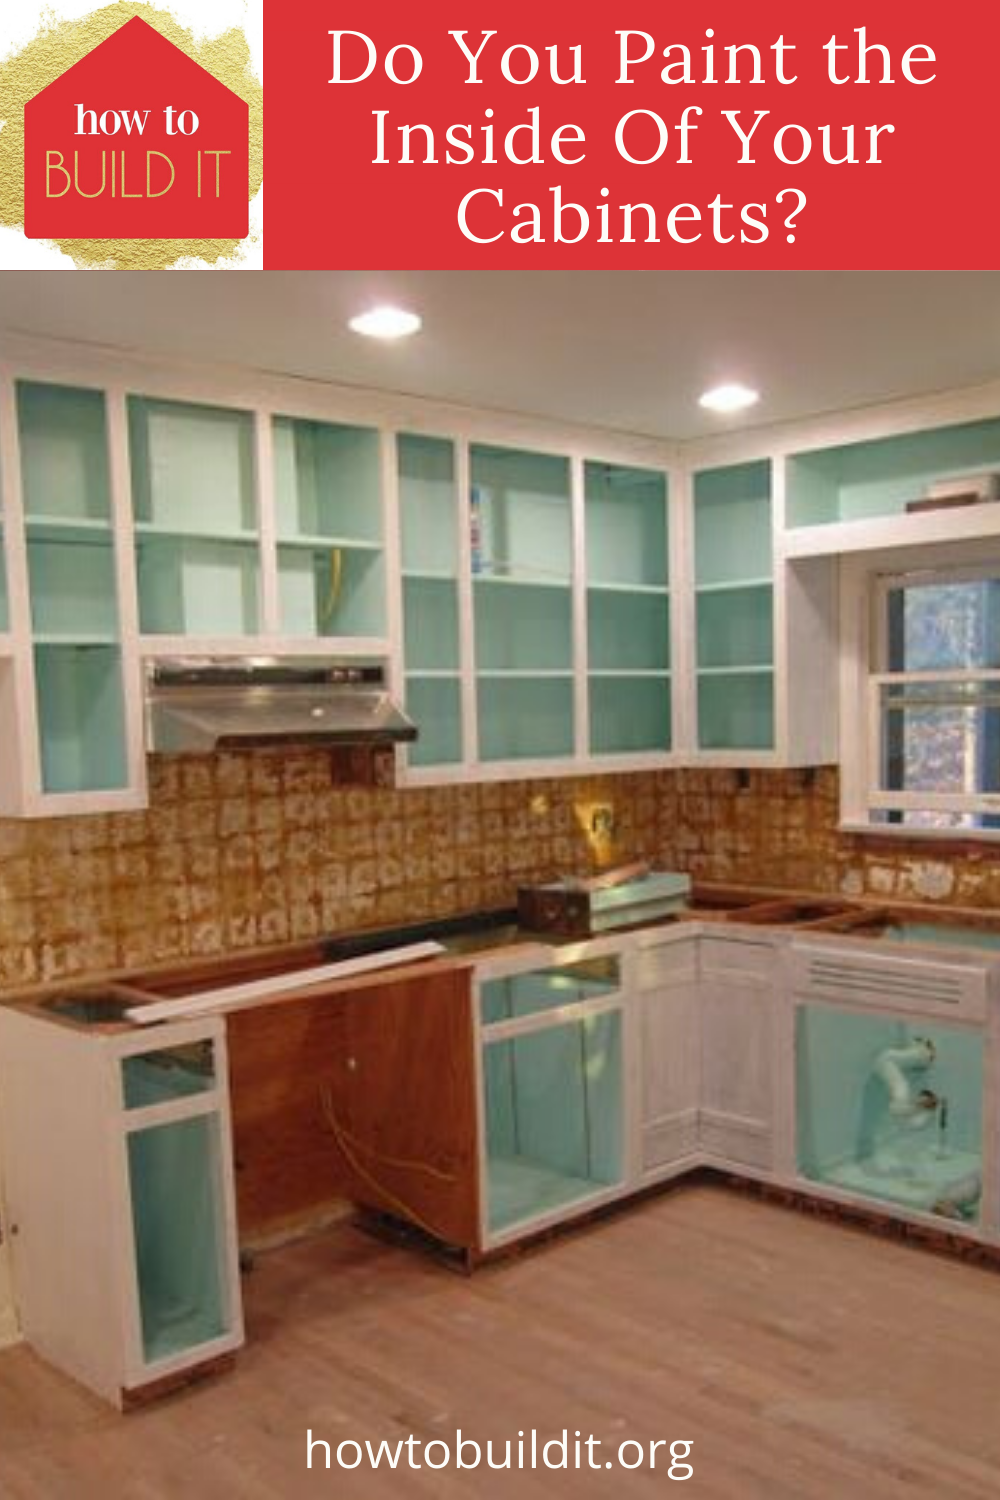 How To Paint The Inside Of Your Cabinets How To Build It Home Remodeling Diy Home Improvement Projects Diy Renovation